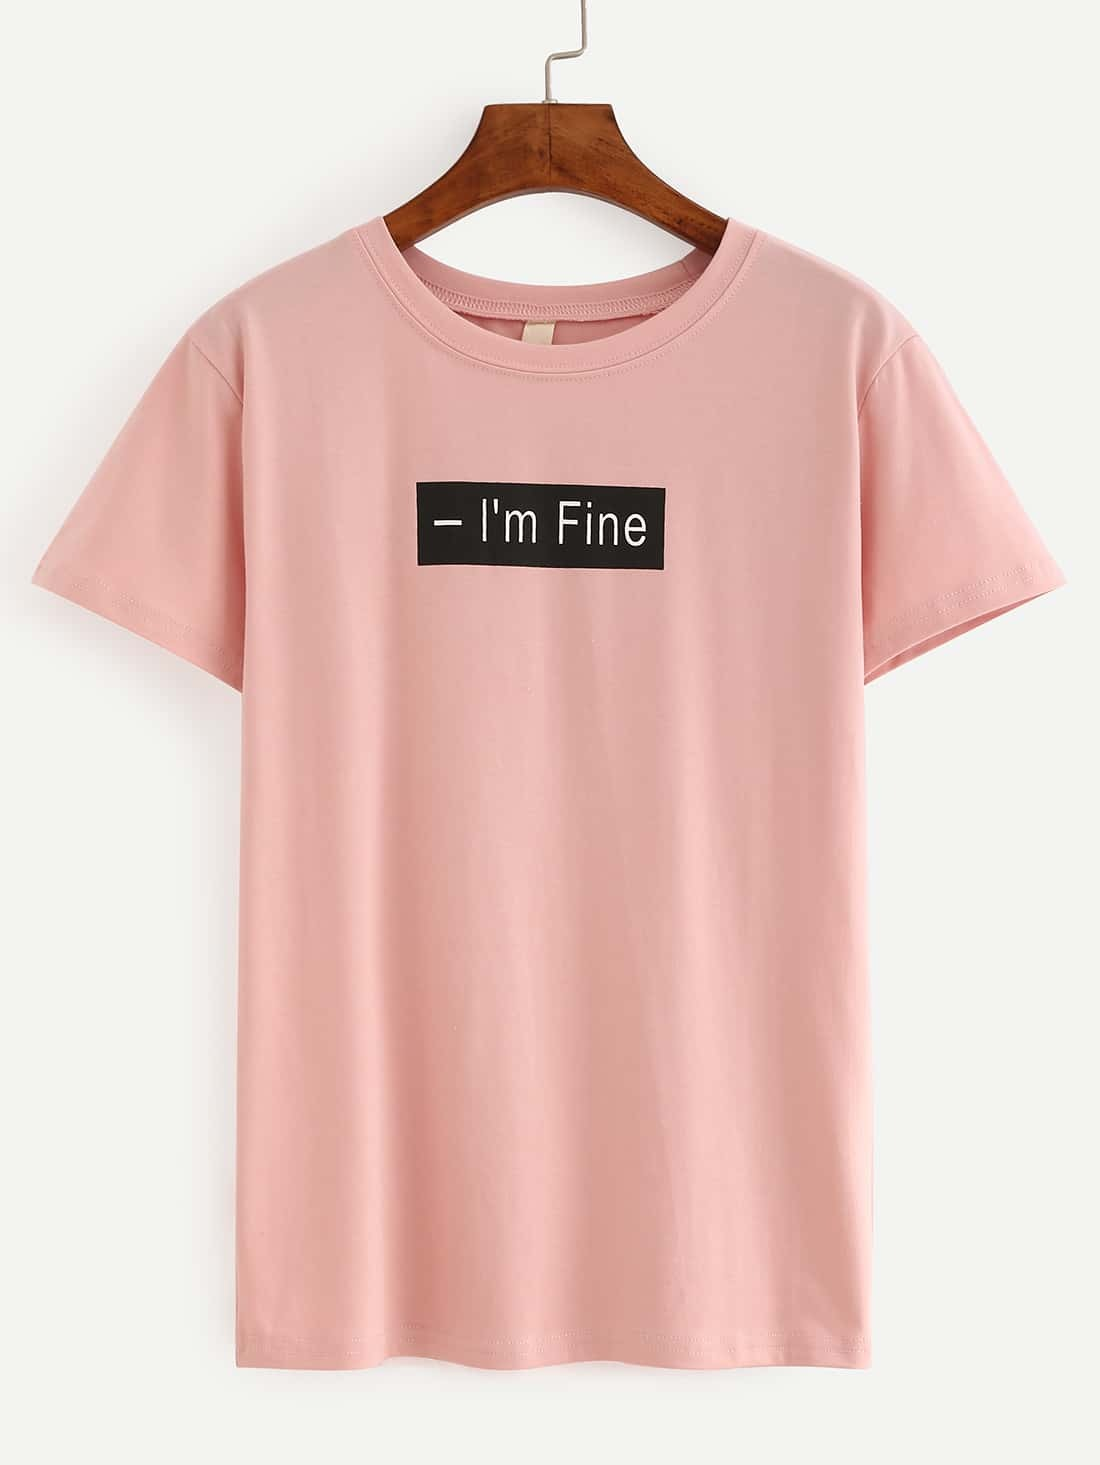 Letter Print Pink T-Shirt EmmaCloth-Women Fast Fashion Online